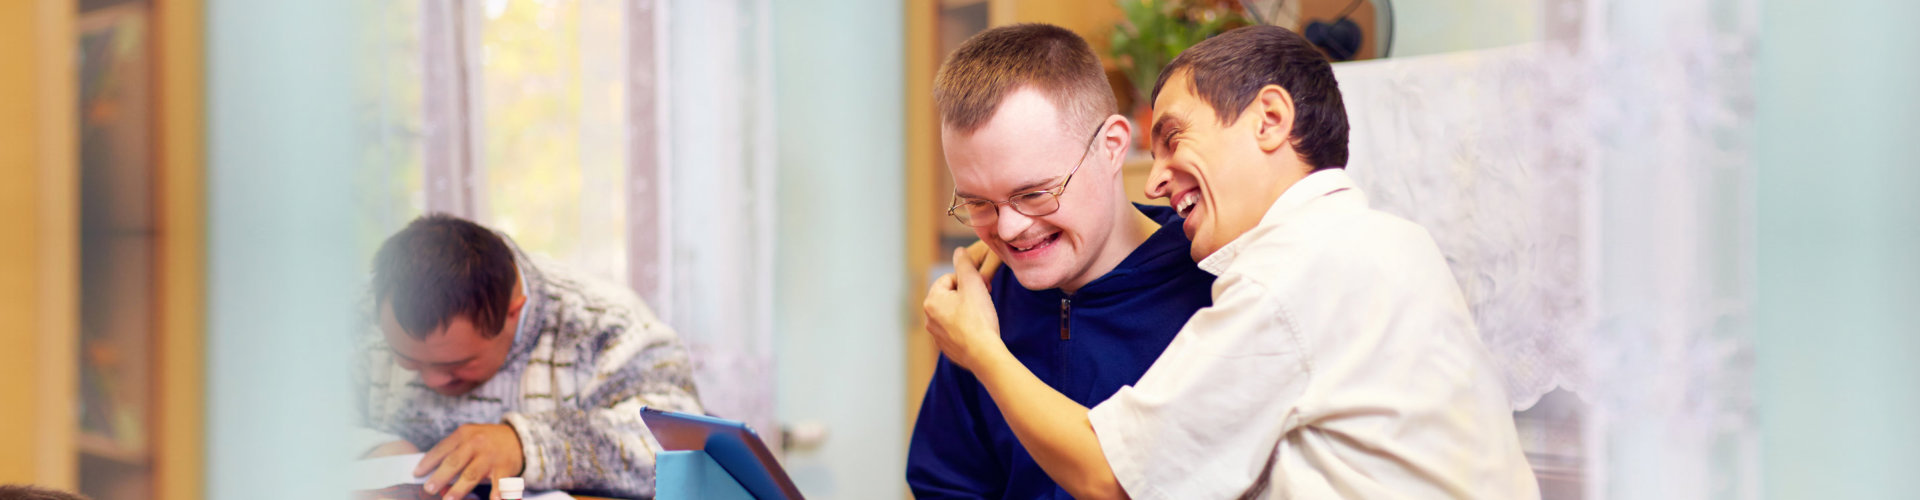 friends with disability socializing through internet.